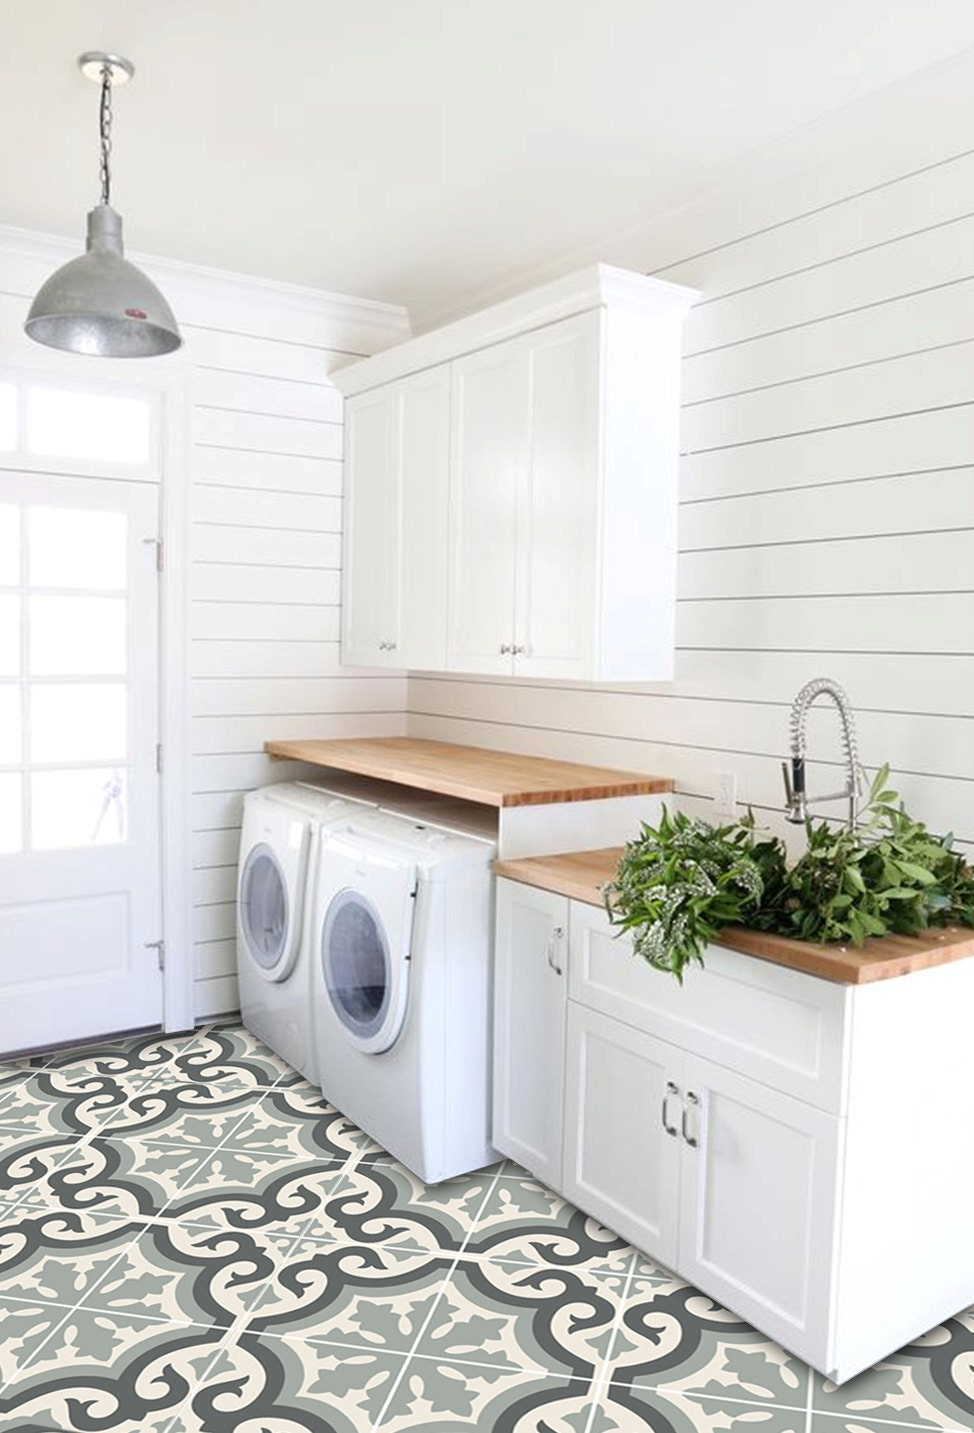 Flooring can be SO expensive, but it doesn't have to be! These incredibly creative floor transformations will give you cheap flooring ideas that don't skimp on style. So if you are stressed out about how you update the flooring in your home on a budget, look no further :)